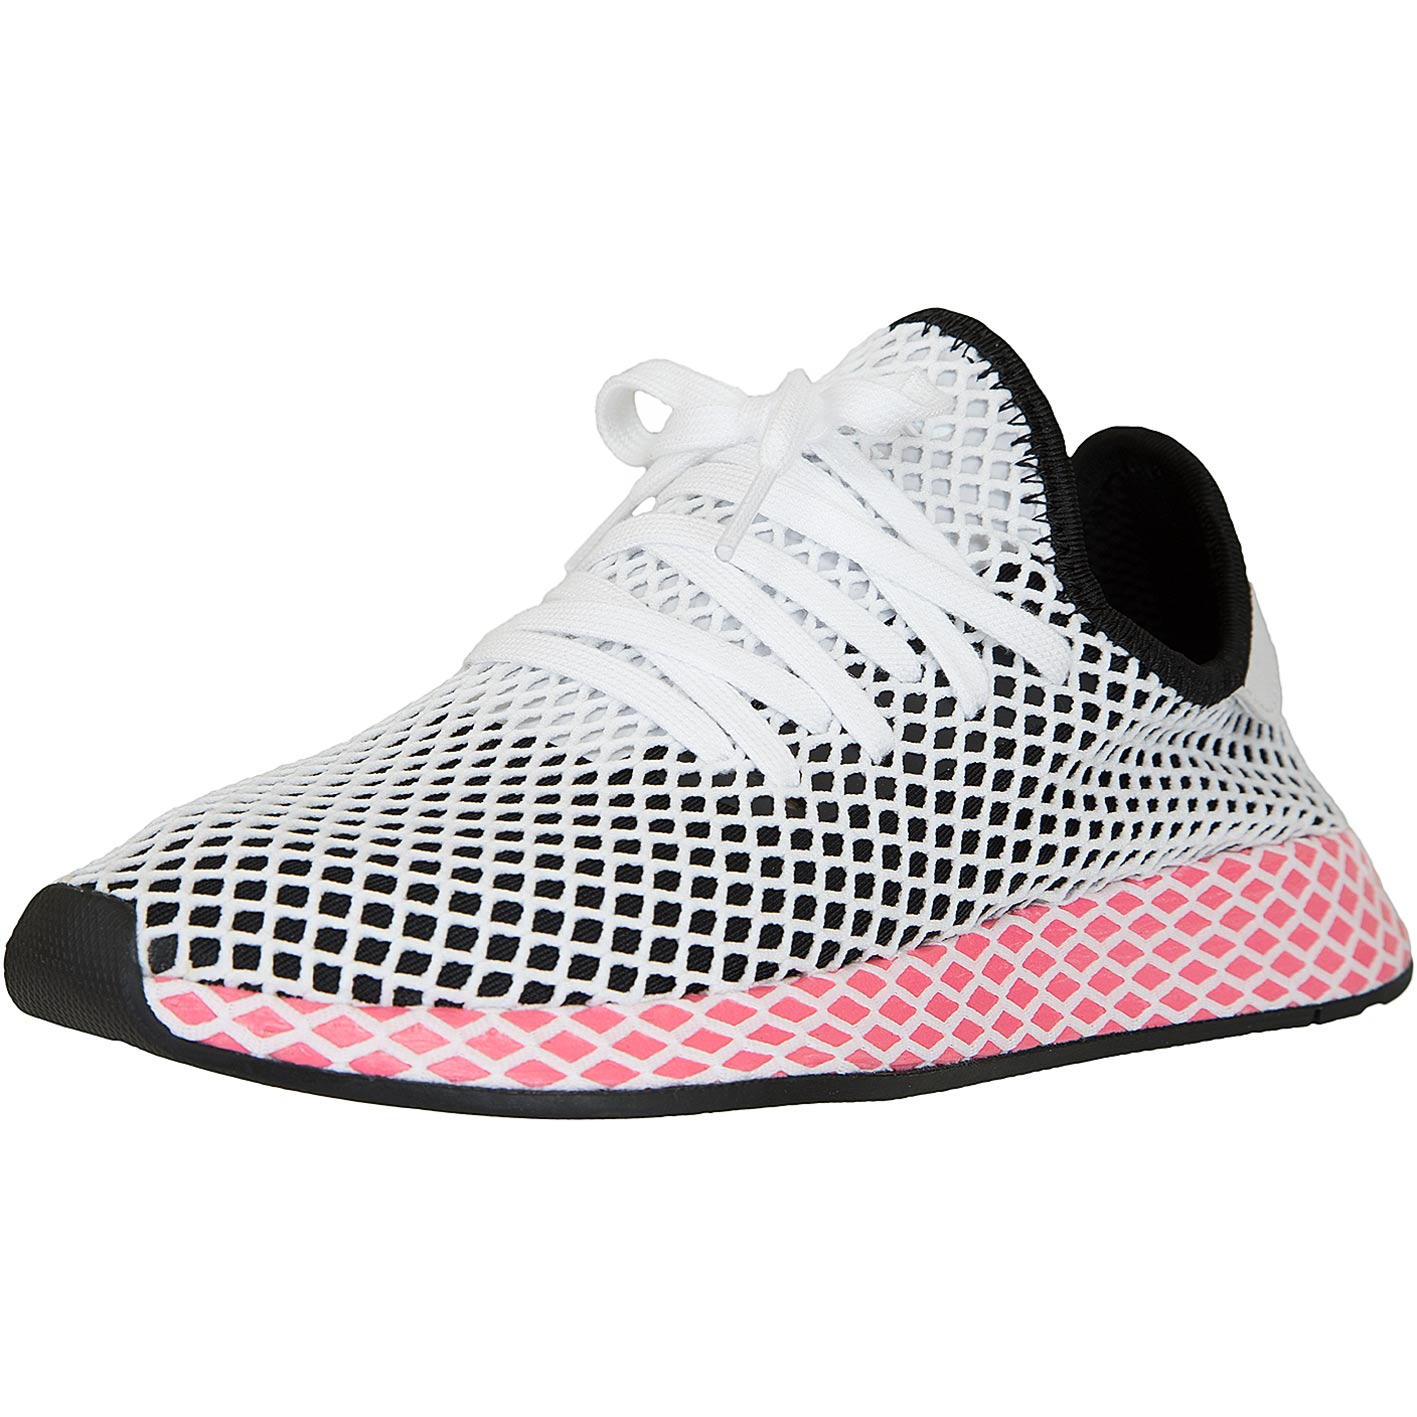 adidas originals damen sneaker deerupt runner schwarz wei. Black Bedroom Furniture Sets. Home Design Ideas